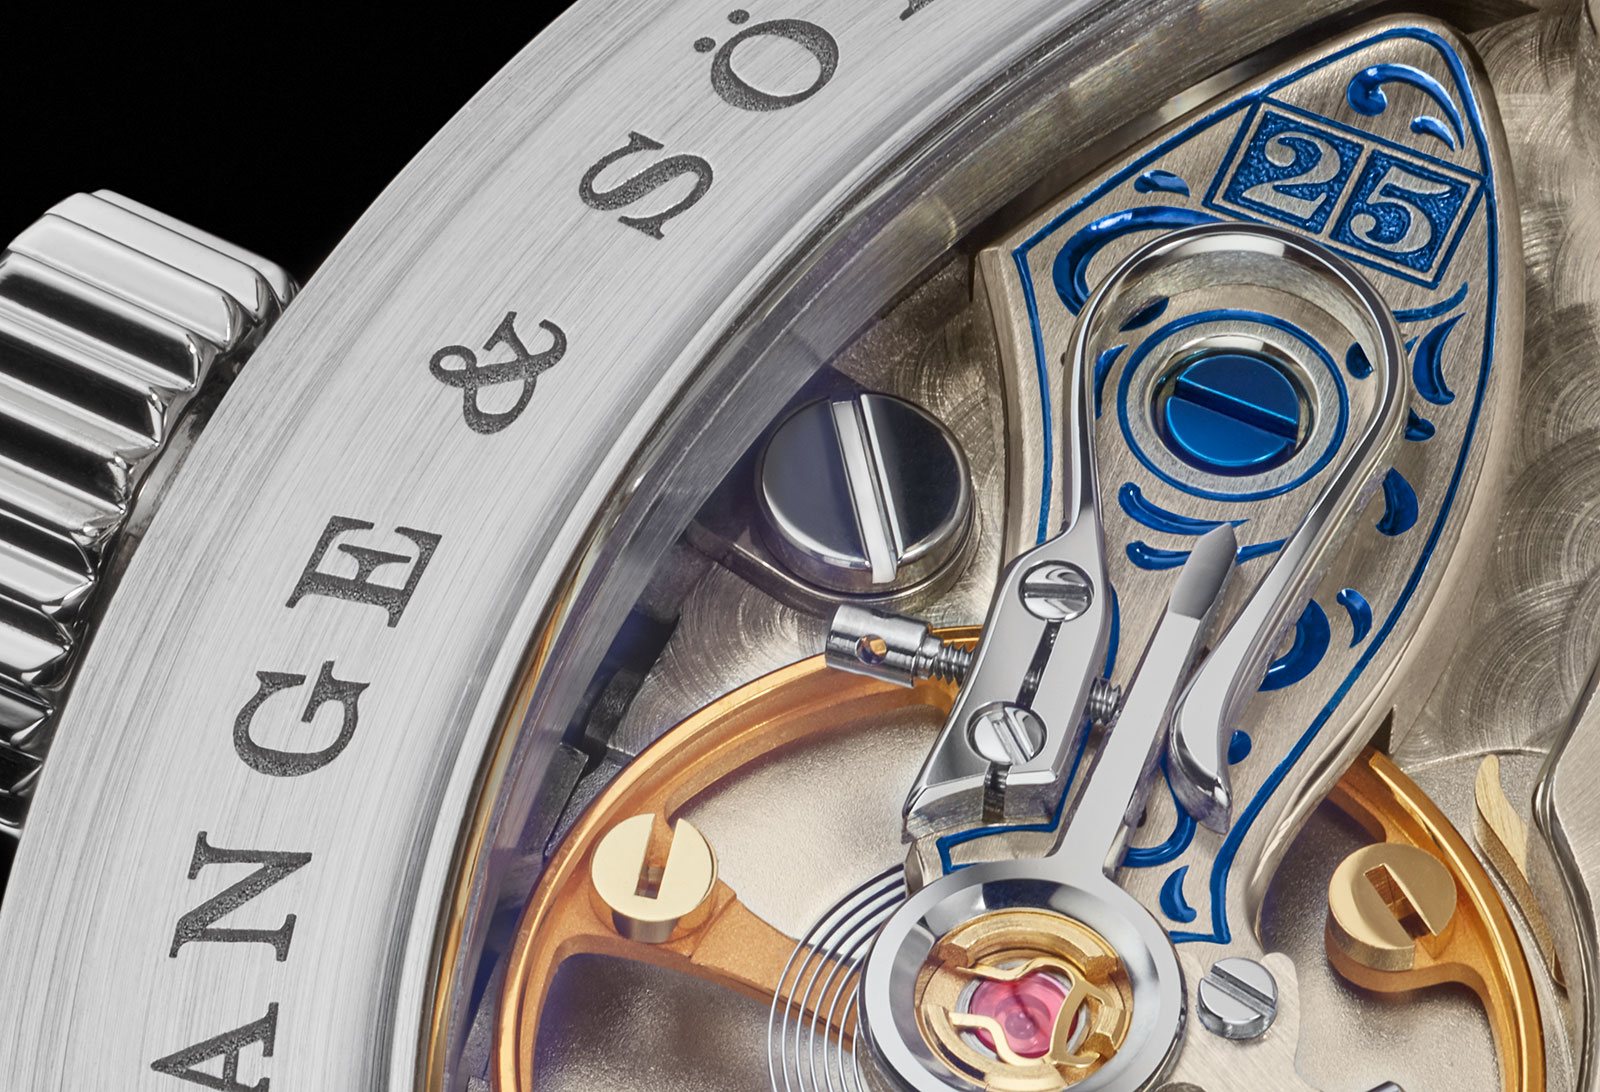 Lange-1-25th-Anniversary-watch-5-1